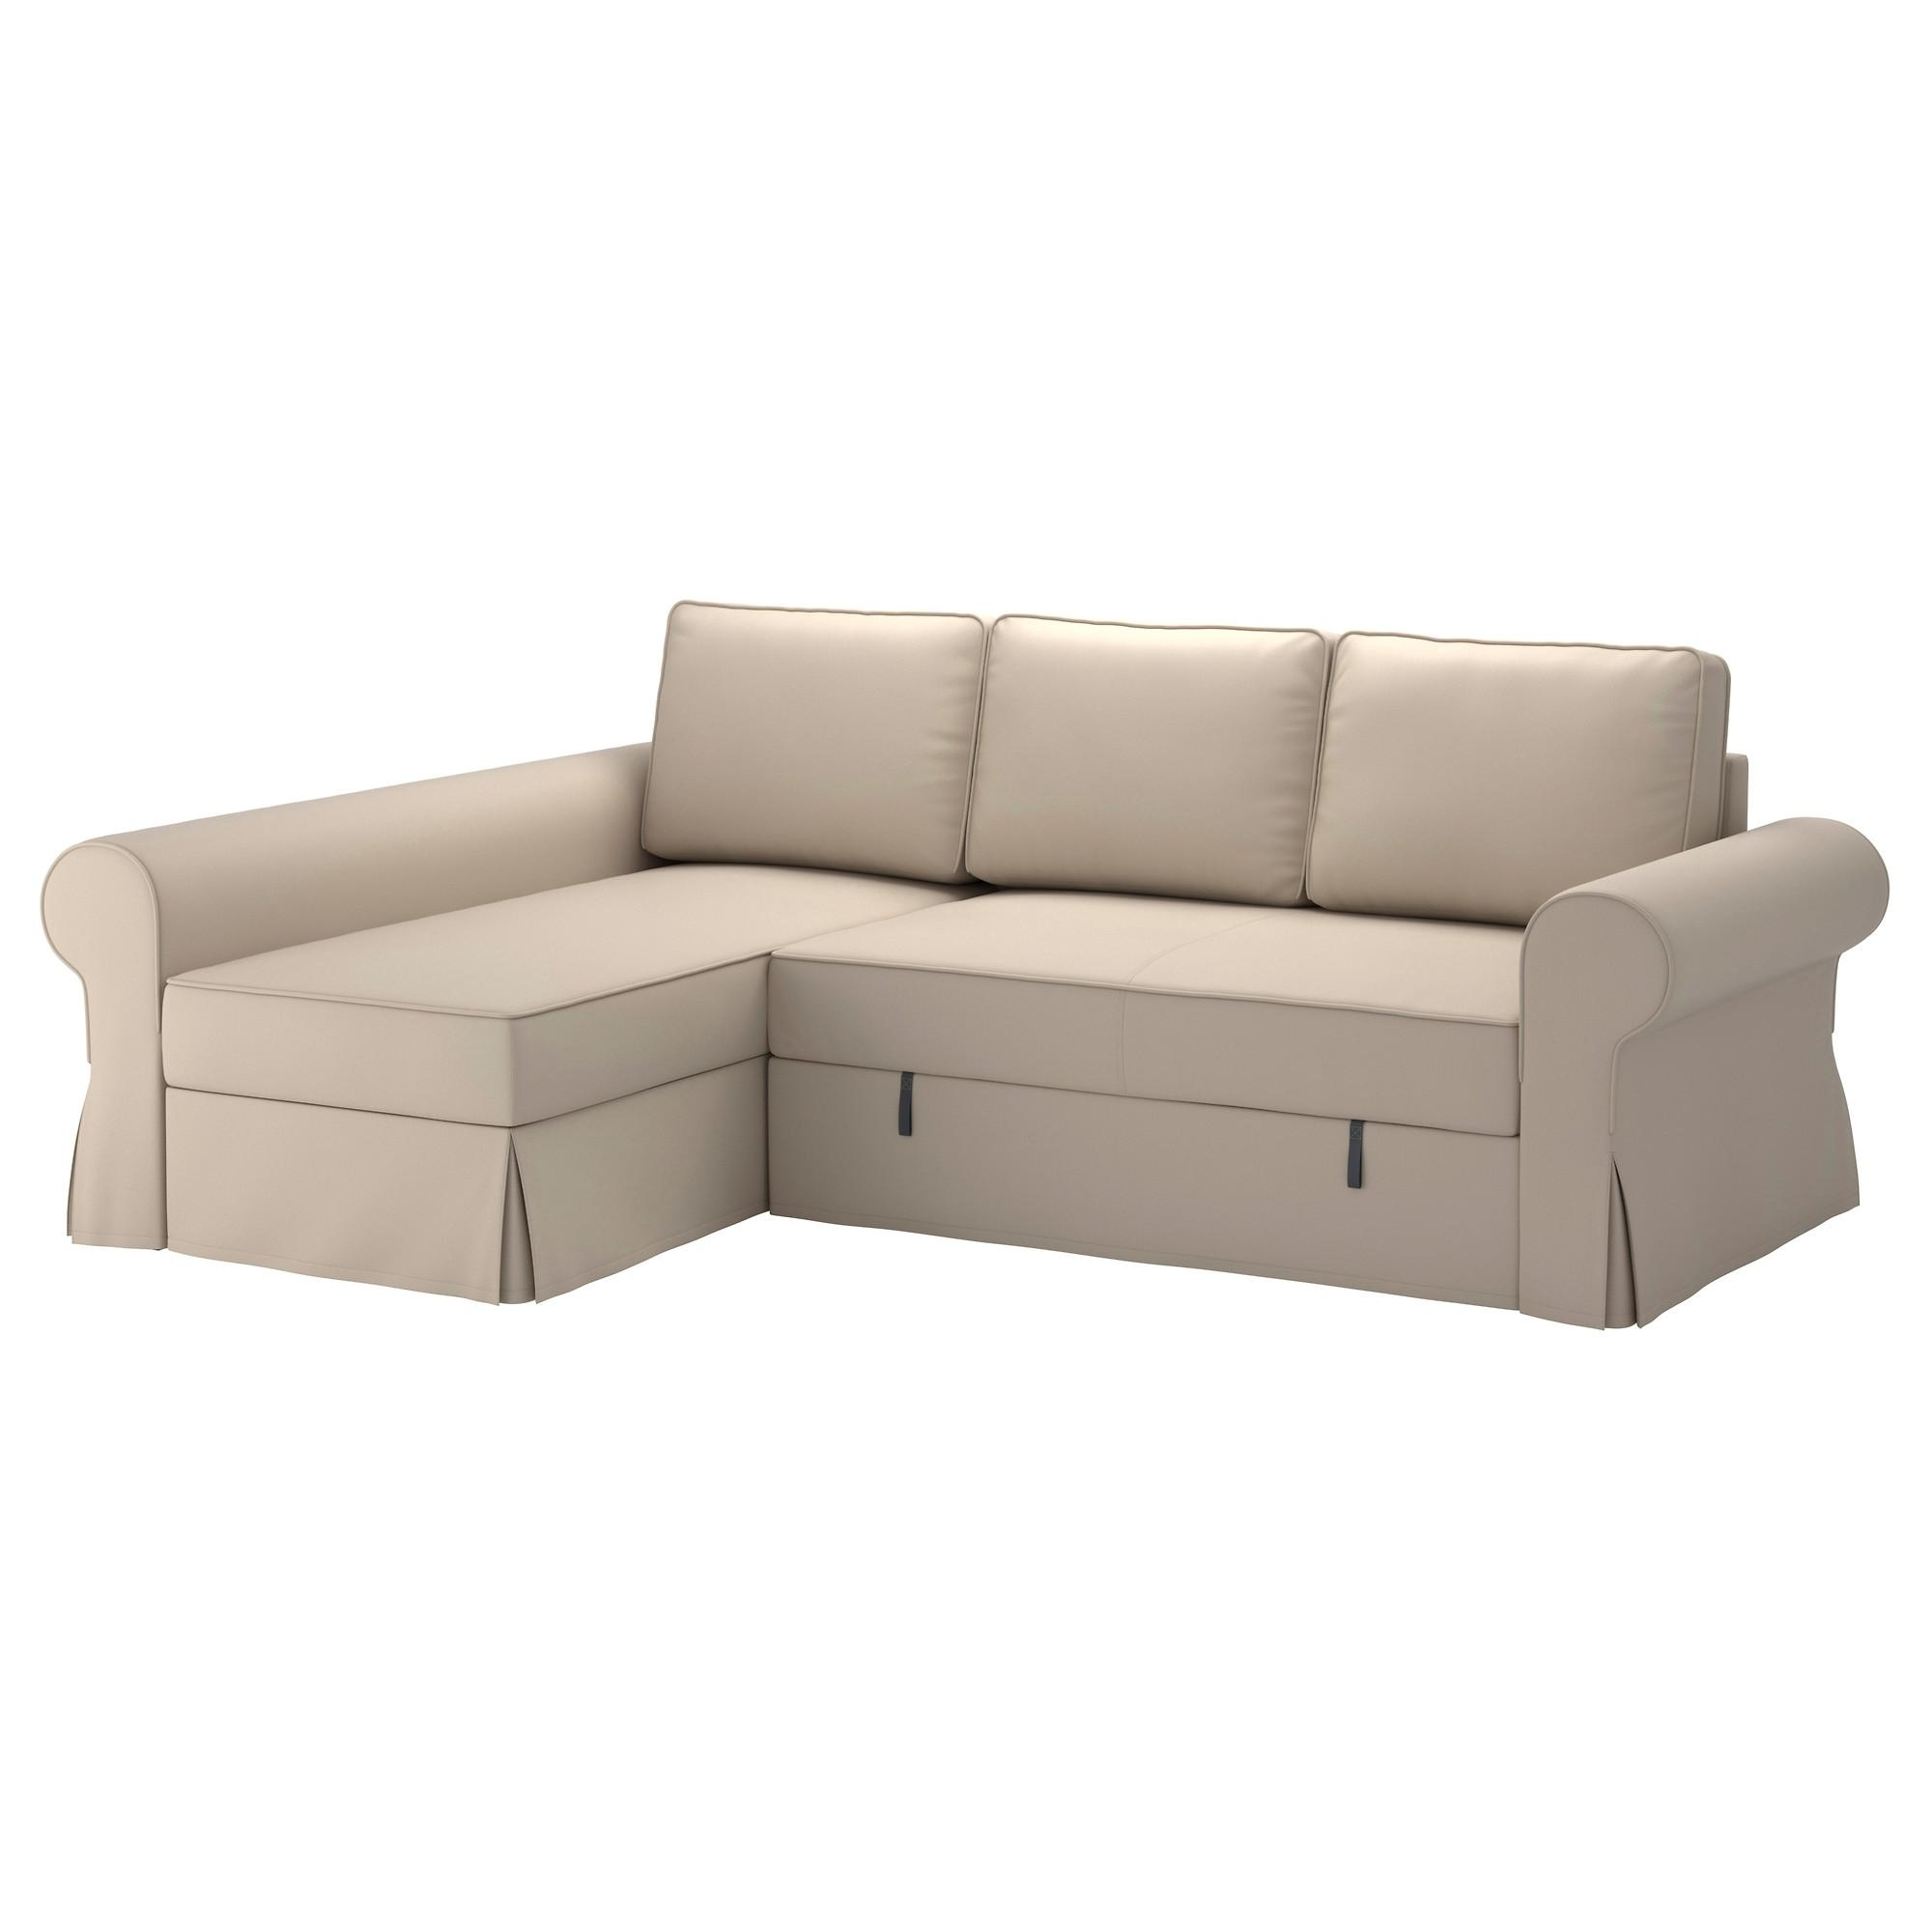 Backabro Sofa Bed With Chaise Longue Ramna Beige – Ikea For Ikea Chaise Lounge Sofa (Image 1 of 20)